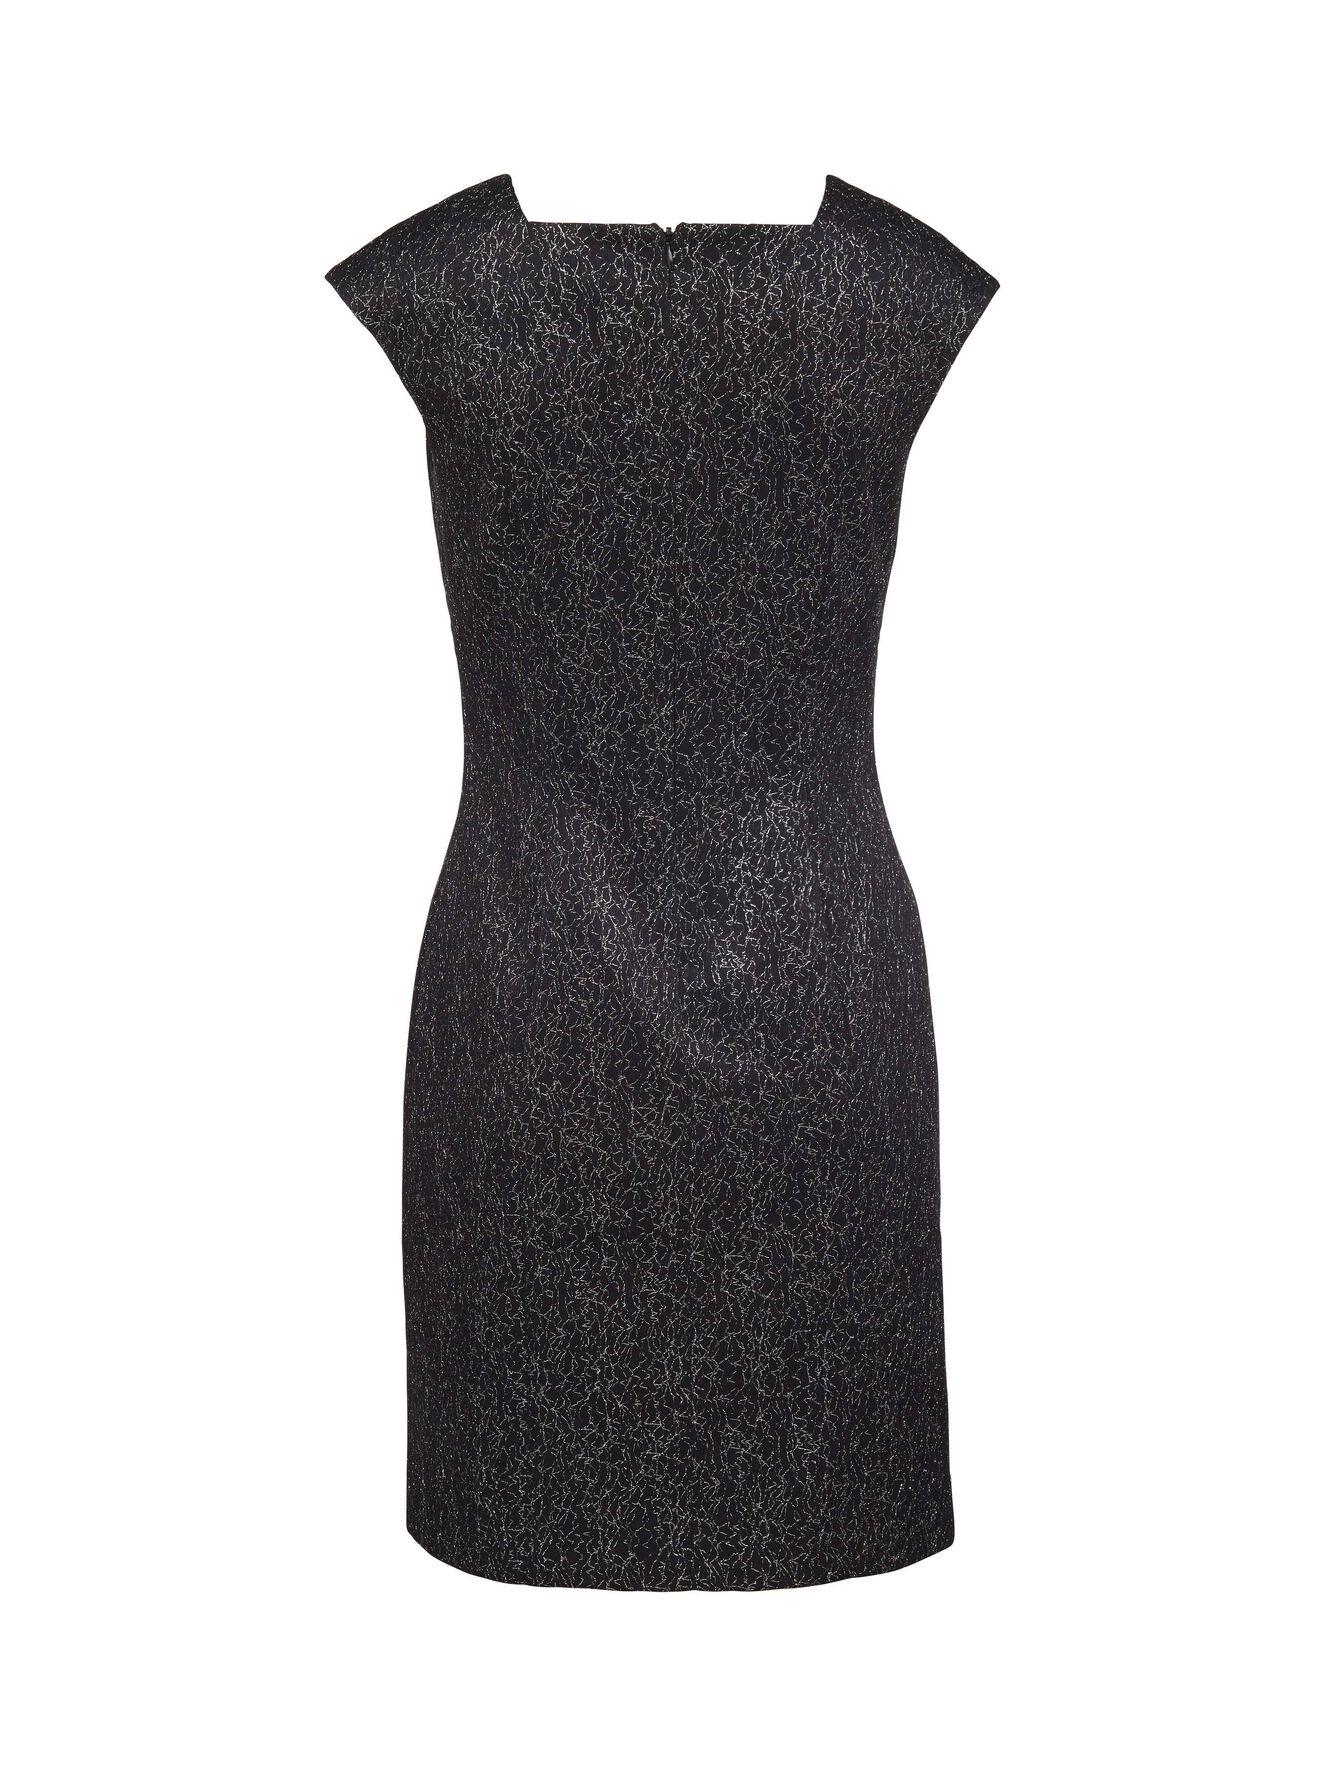 LINGUA J DRESS in Midnight Black from Tiger of Sweden